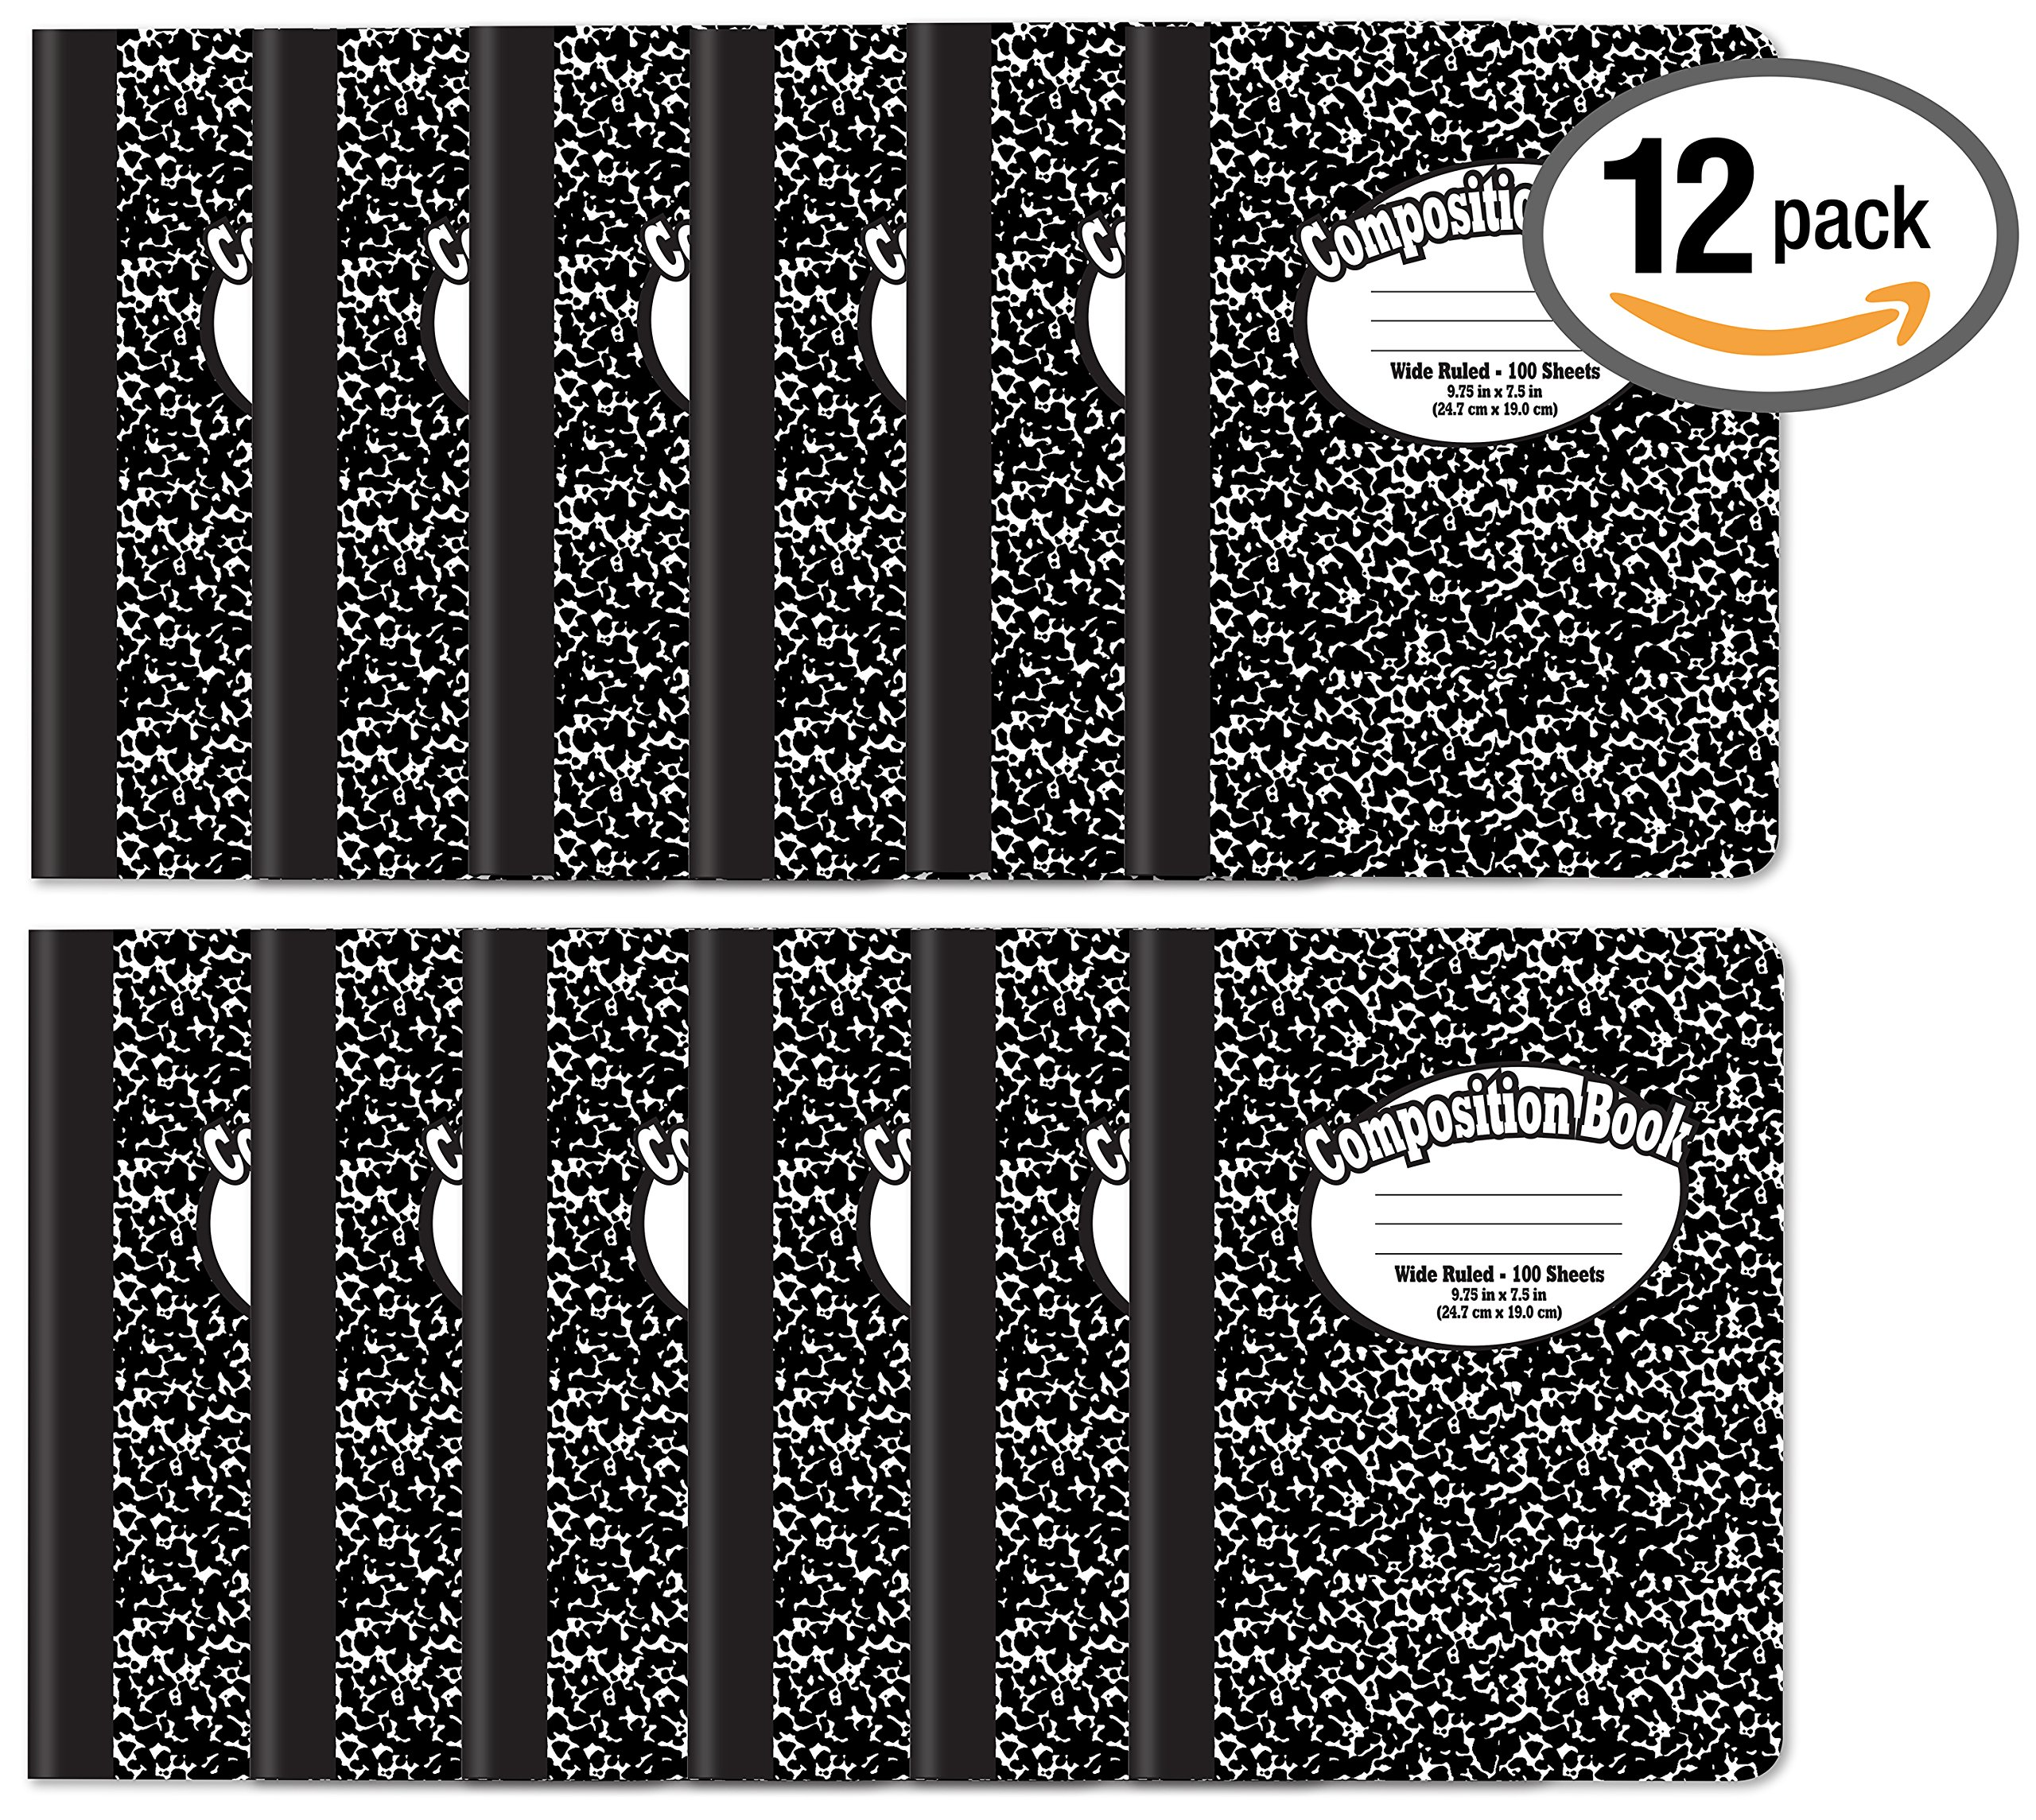 Composition Book Notebook - Hardcover, Wide Ruled (11/32-inch), 100 Sheet, One Subject, 9.75'' x 7.5'', Black Cover-12 Pack